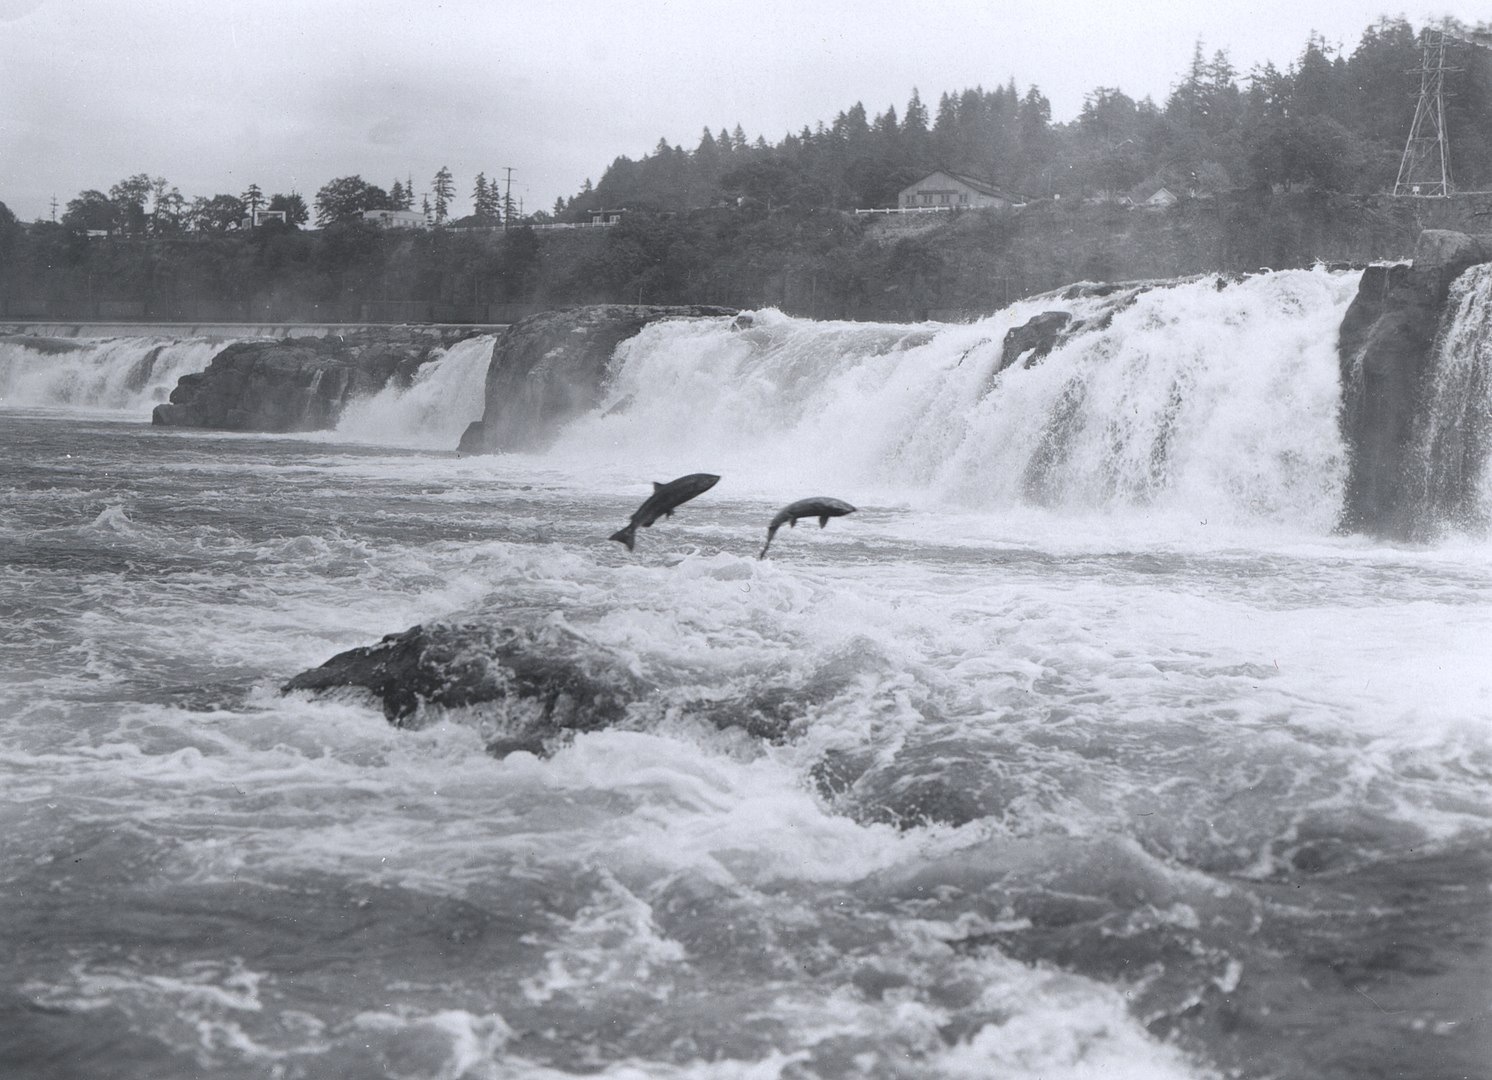 Images/Fishinginthecity/SAC/CAEP/1492px-Salmon_leaping_at_Willamette_Falls.jpg